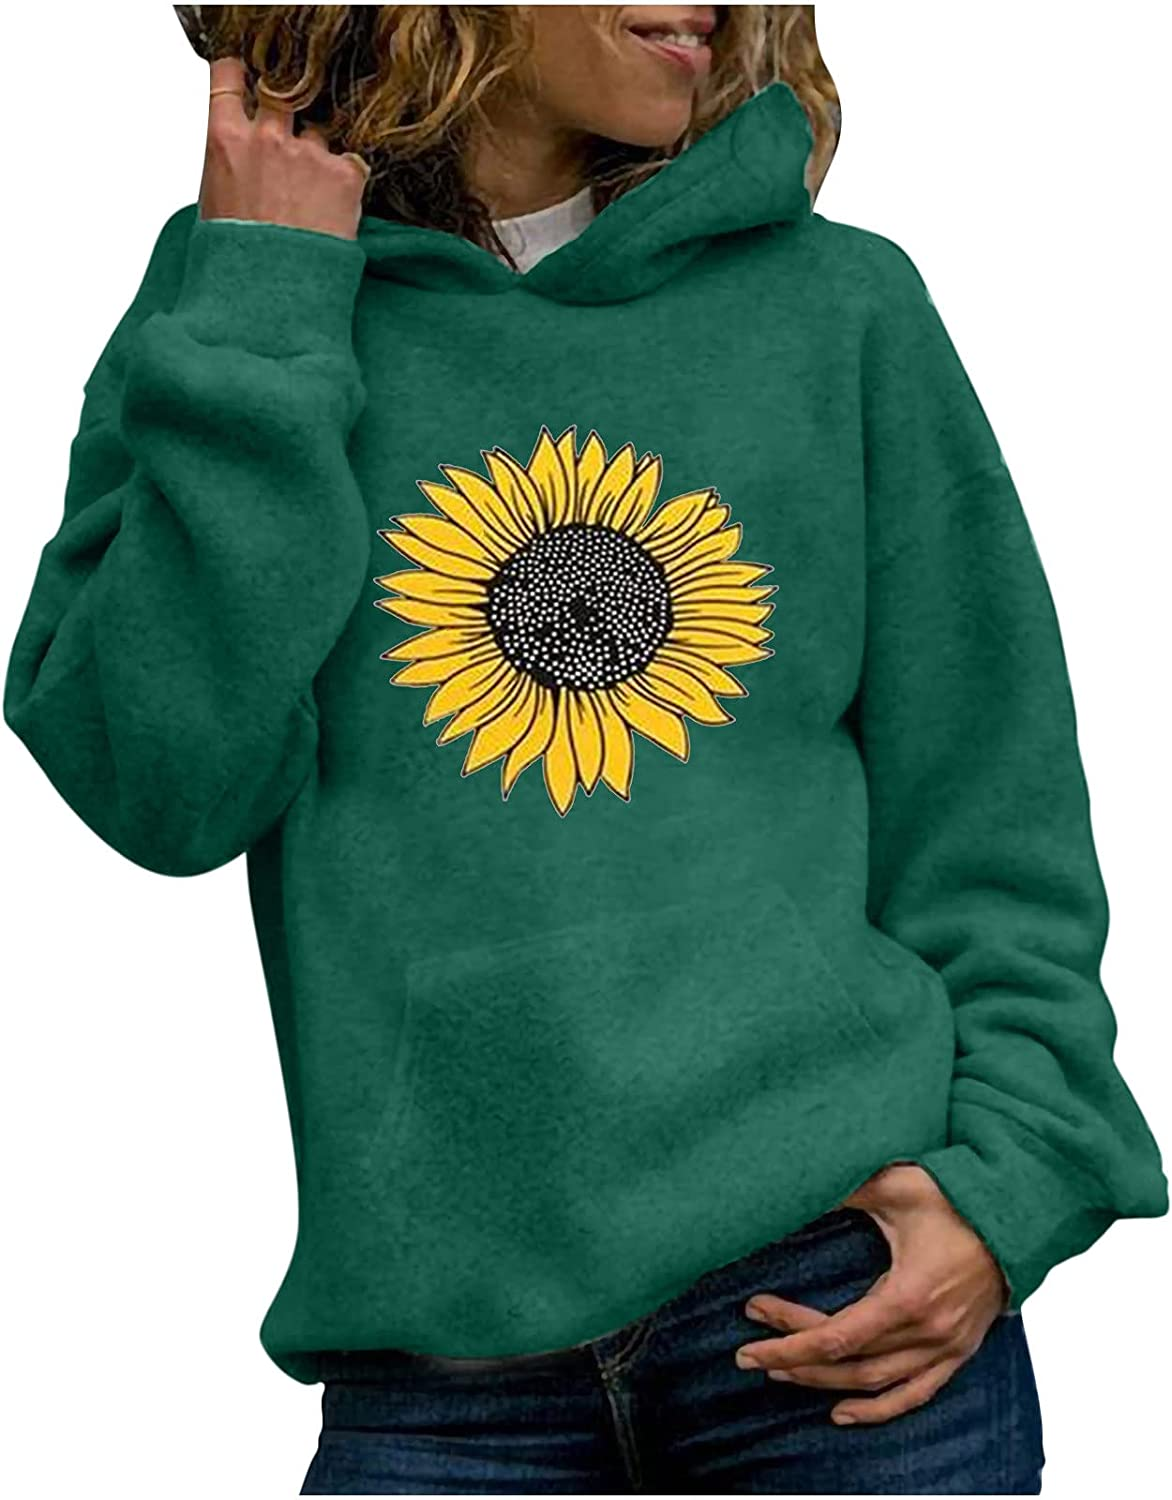 Sunflower Hoodie for Womens Fall Fashion Casual Long Sleeve Shirt Hooded Fit Tee Trendy Tops Blouse Pocket Sweatshirt